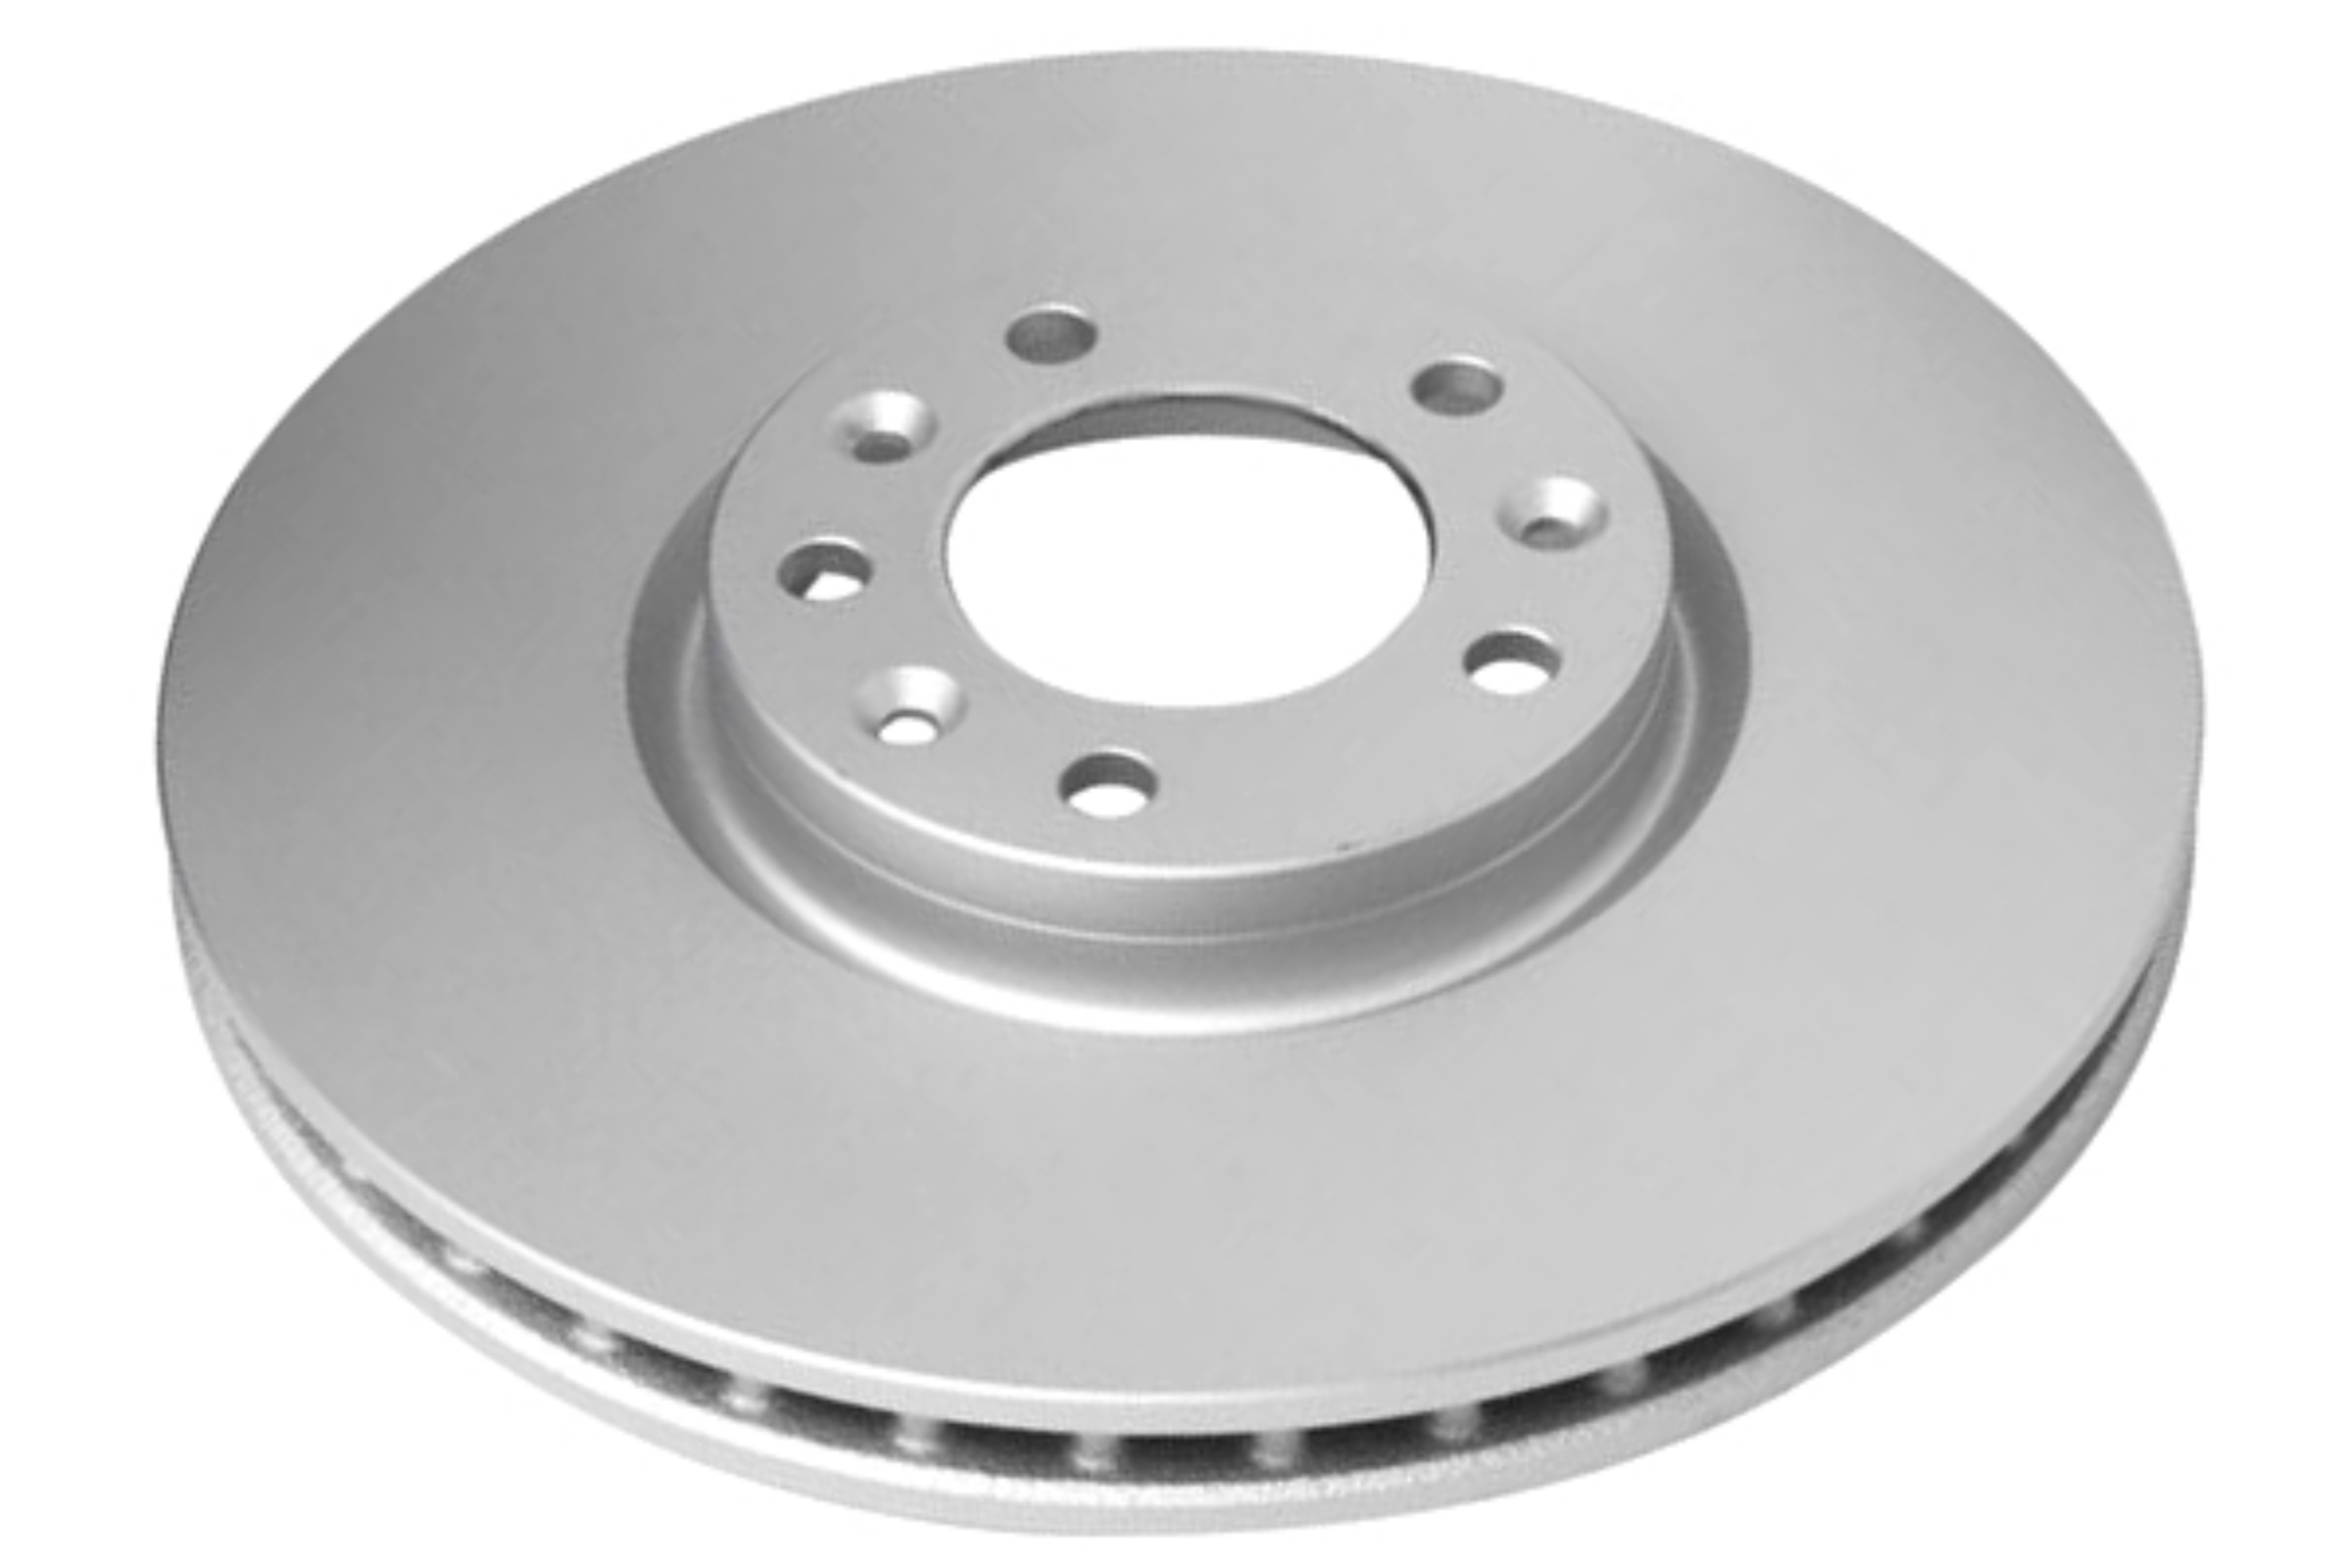 CC Van 06-283mm Front Brake Discs And Pads Peugeot 307 H/'back